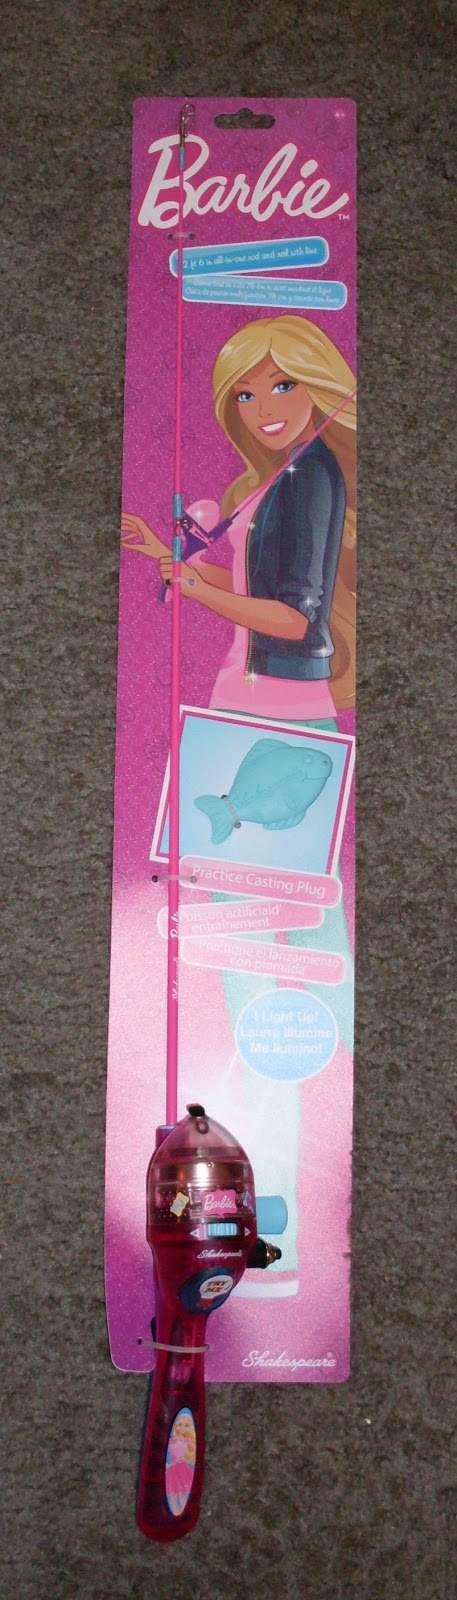 Skippercollector june 2015 for Barbie fishing pole